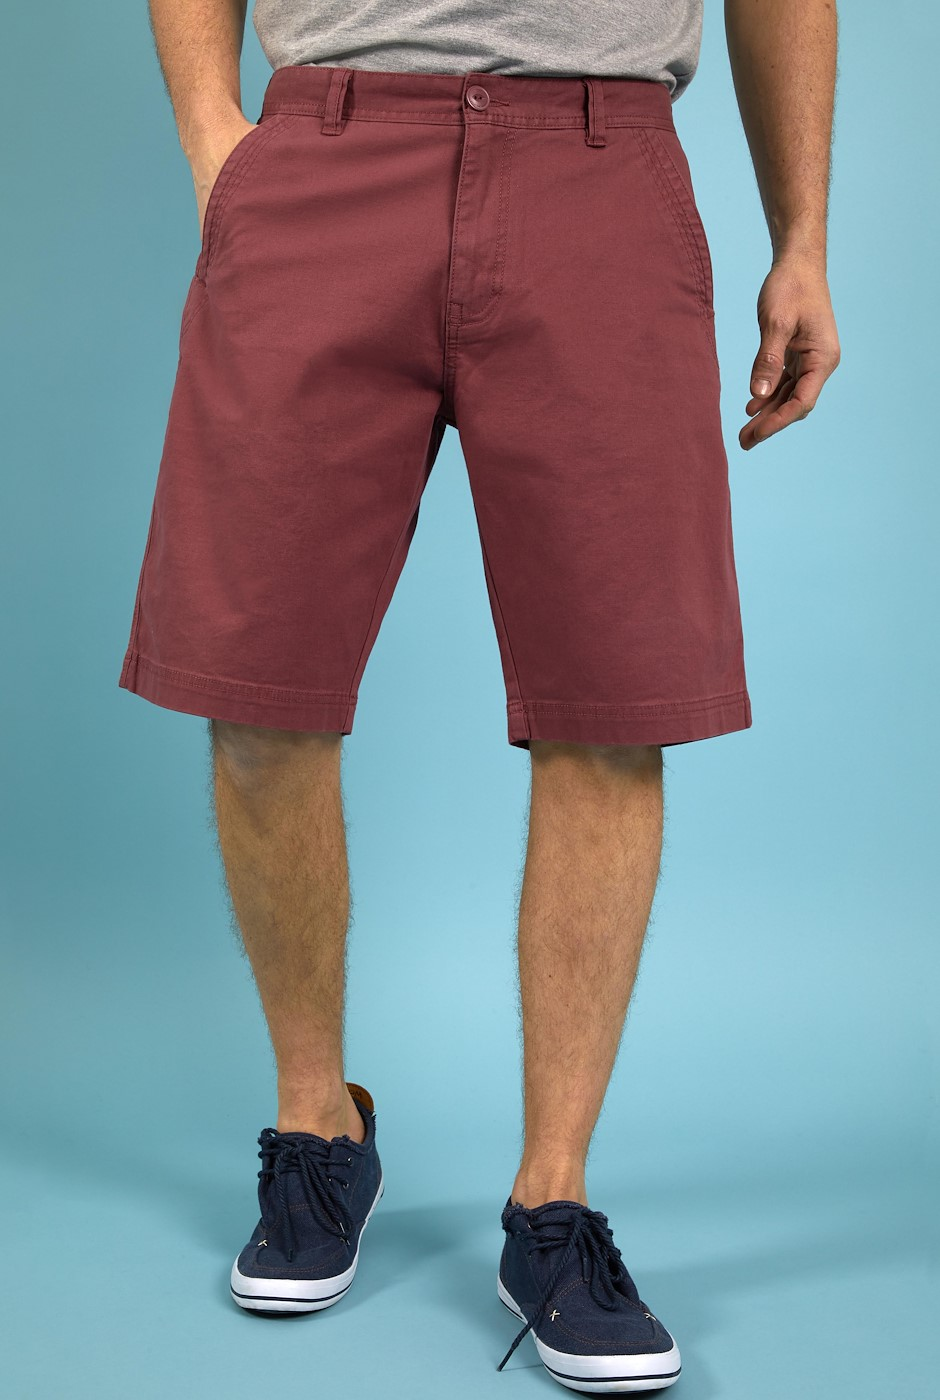 Rayburn Organic Cotton Flat Front Shorts Crushed Berry